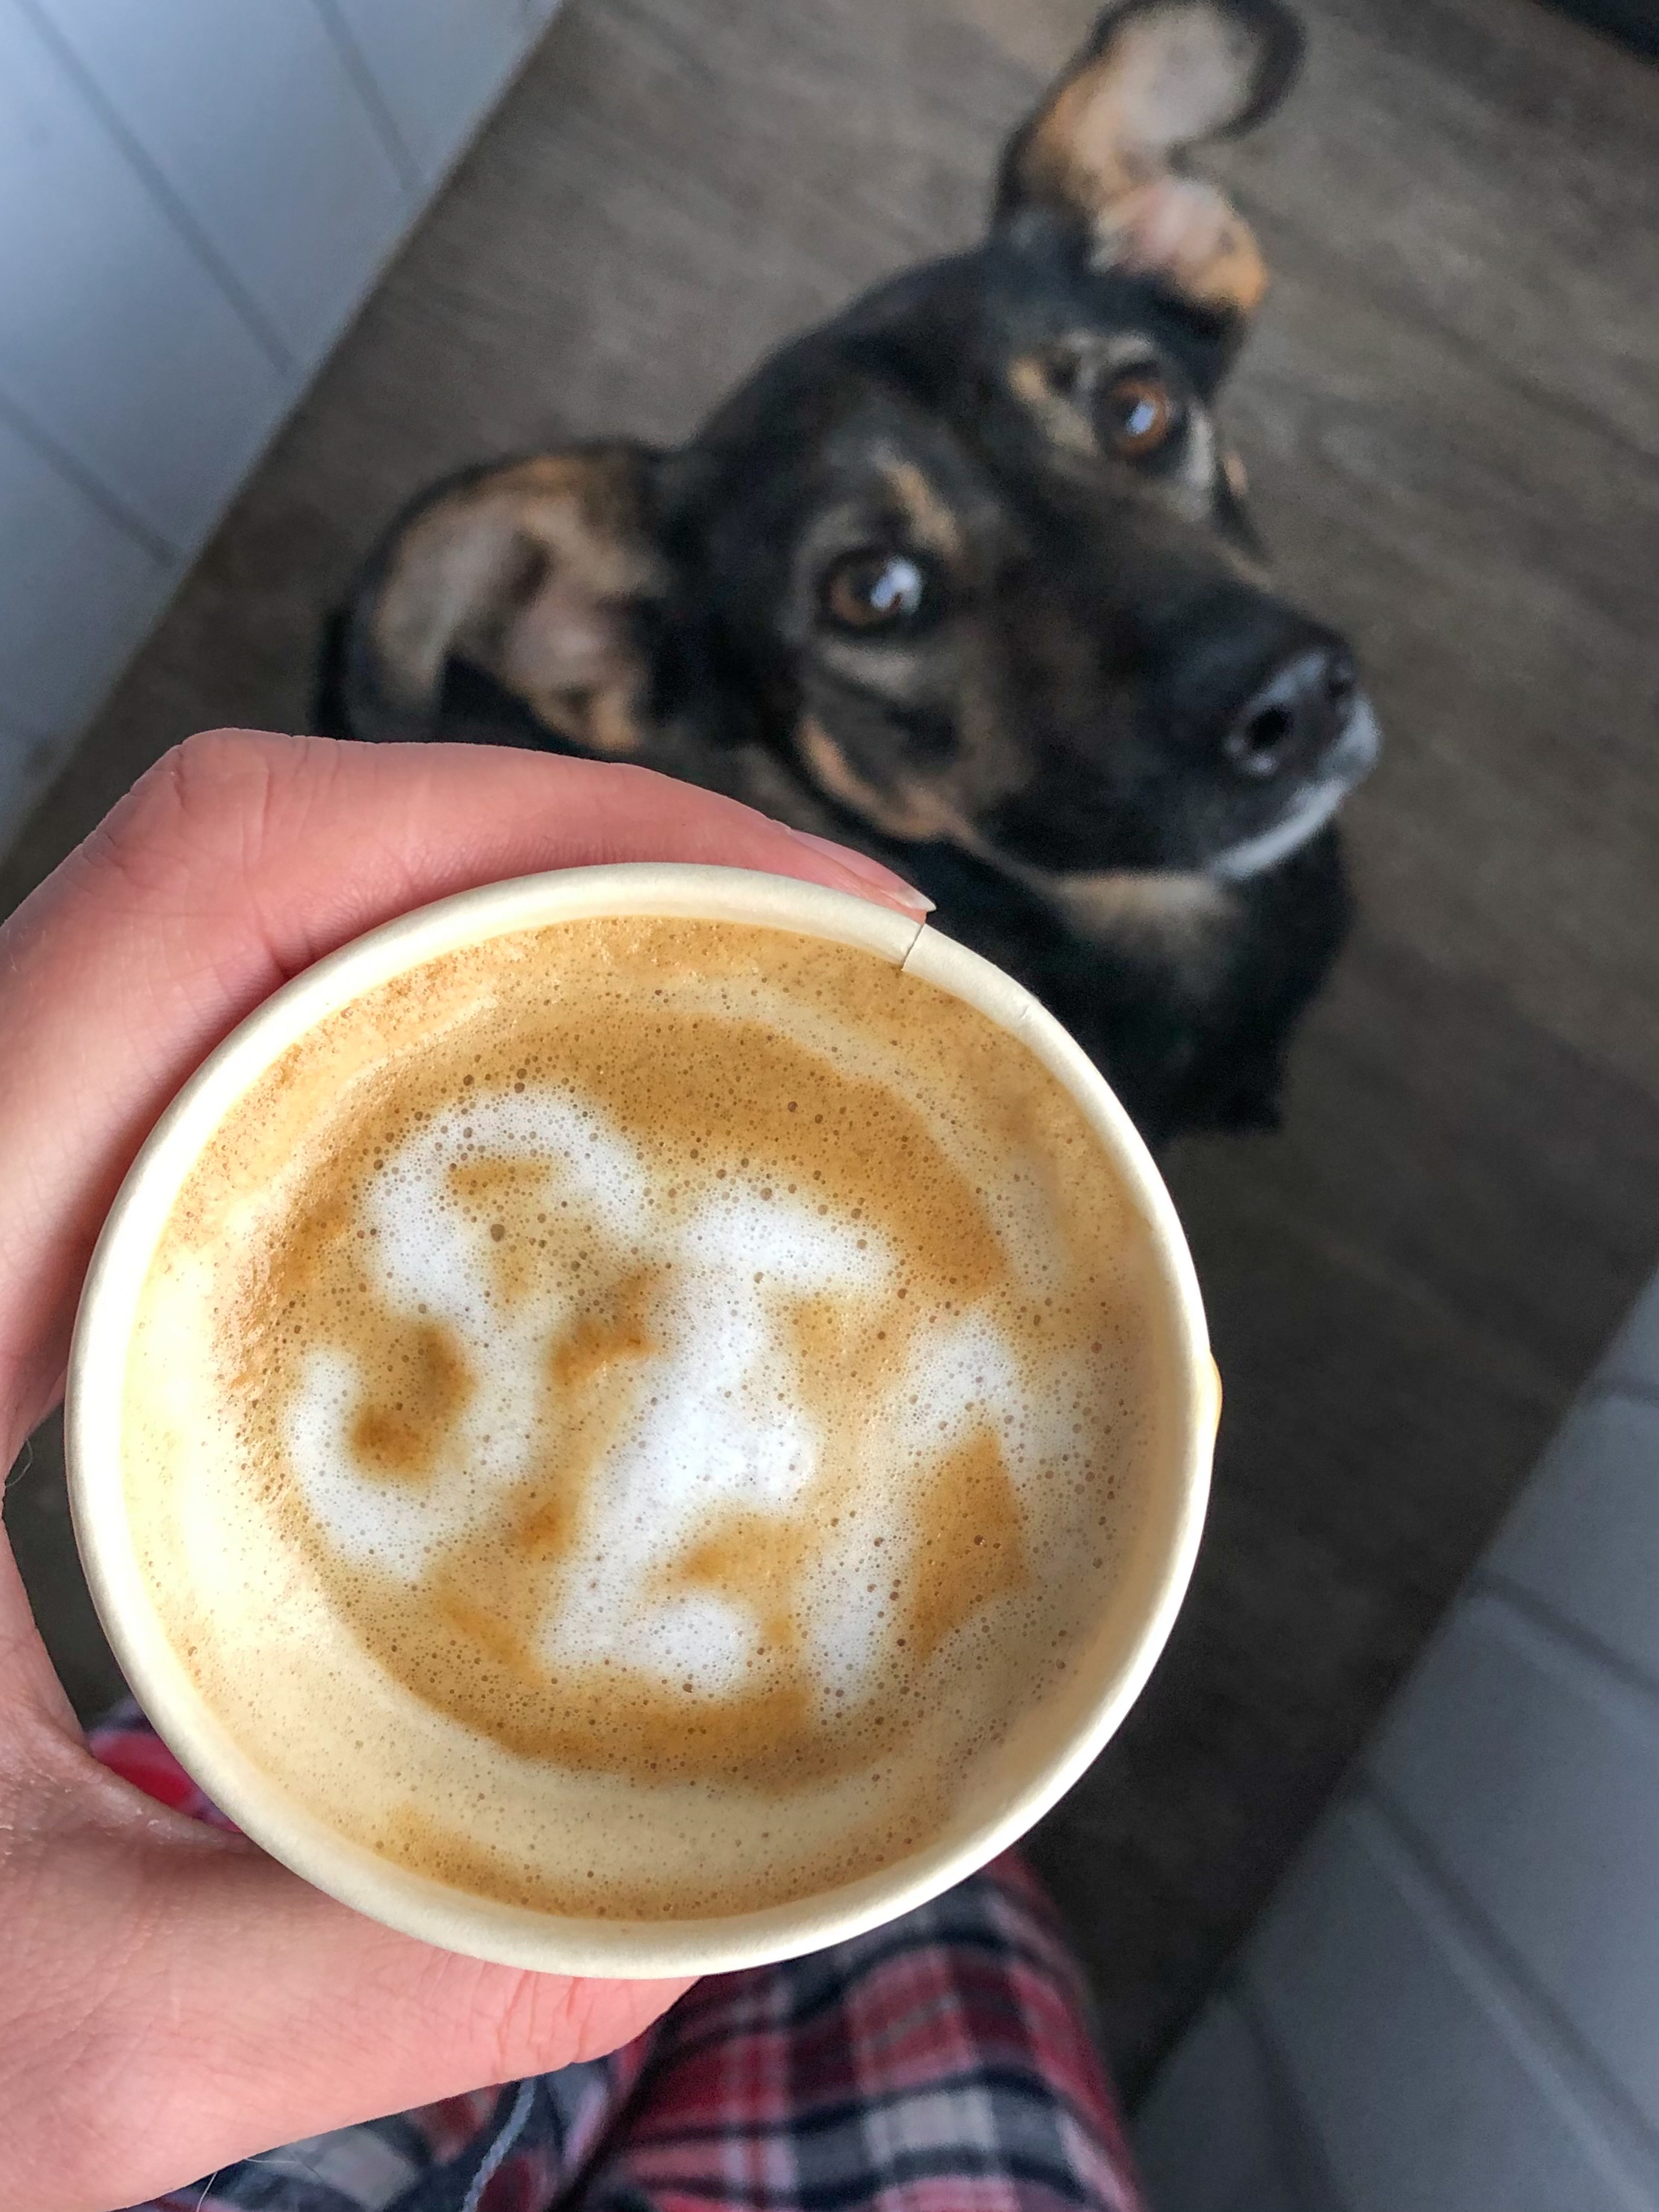 Dog is watching my SEO cappuccino attempts closely